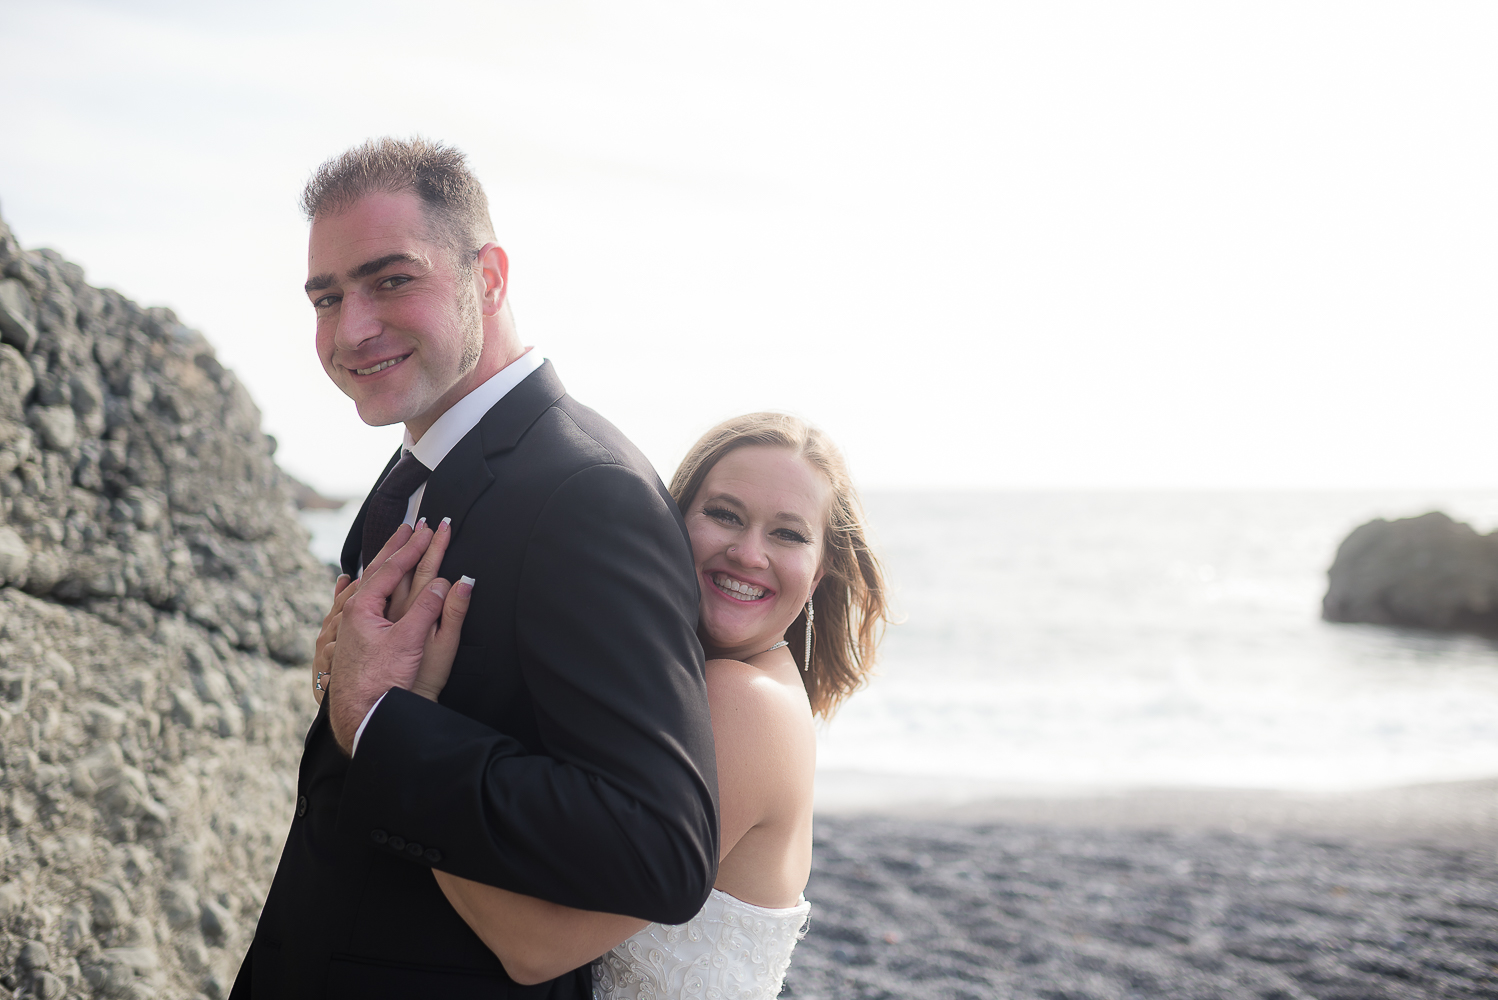 Shelter Cove-Intimate Destination beach Wedding-Parky's Pics Photography-Humboldt County_-52.jpg